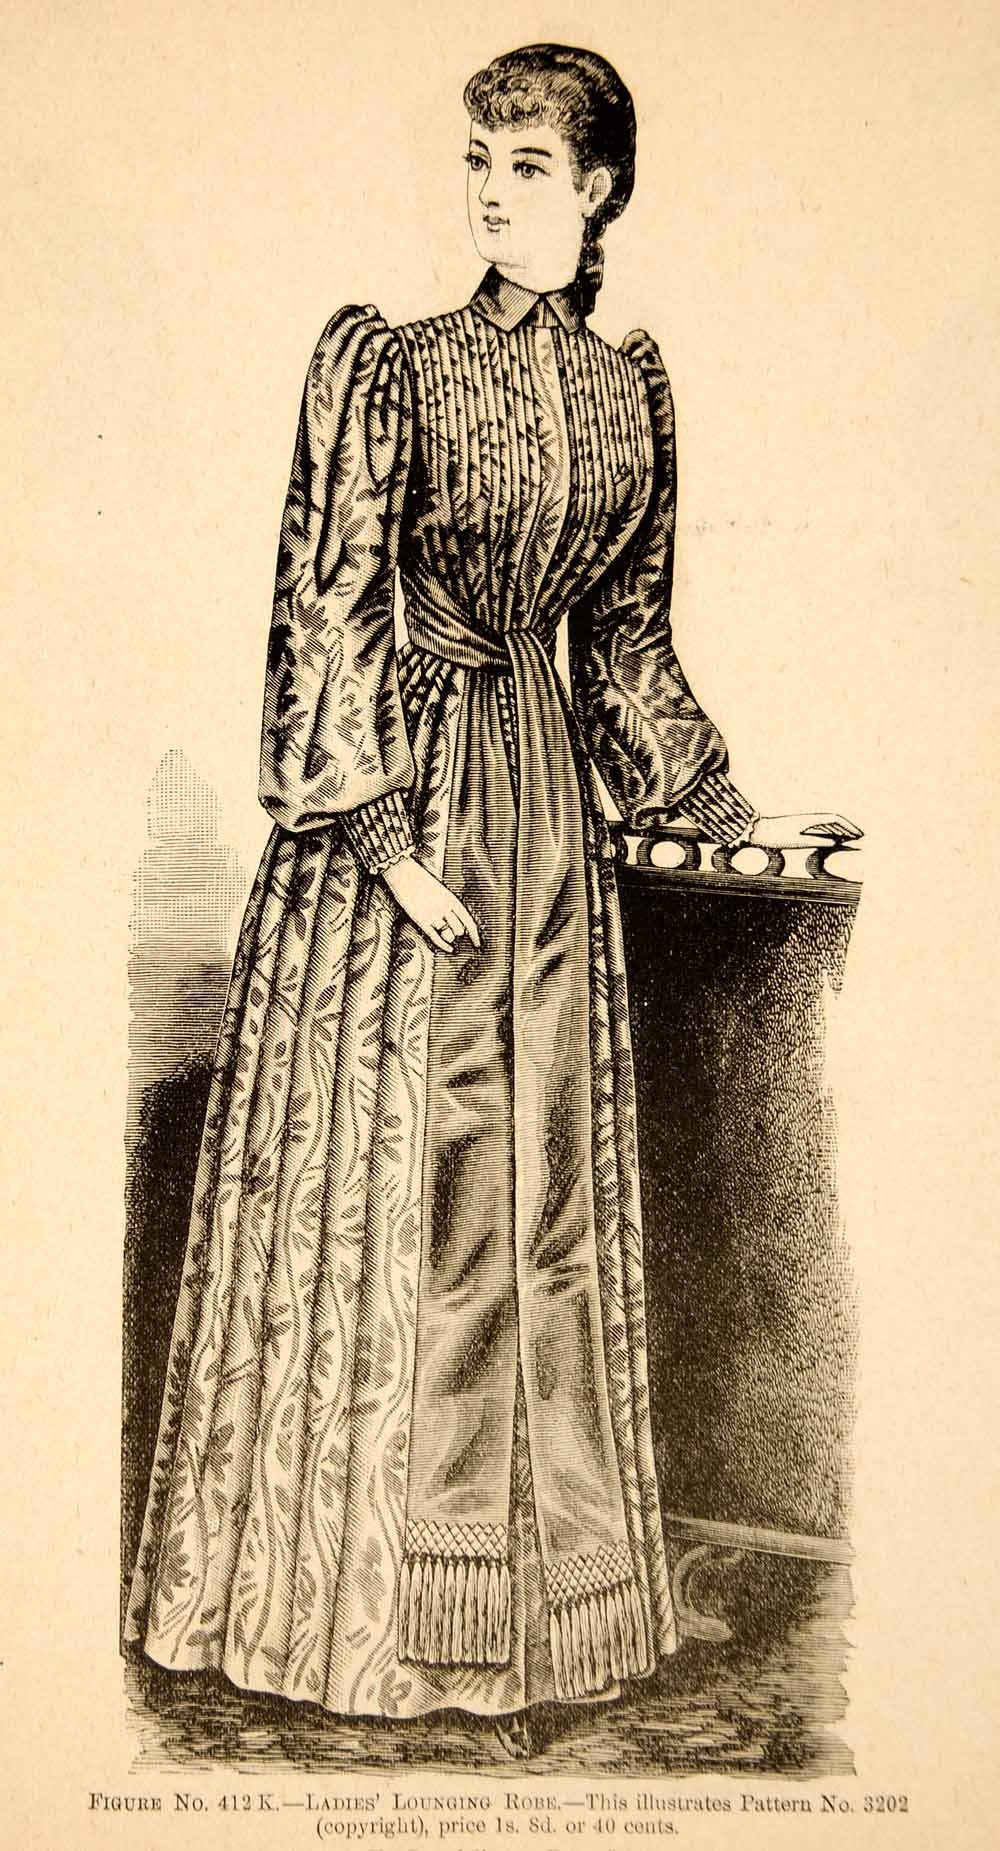 1890 Wood Engraving Fashion Victorian Woman Portrait Costume Clothing Dress YDL7